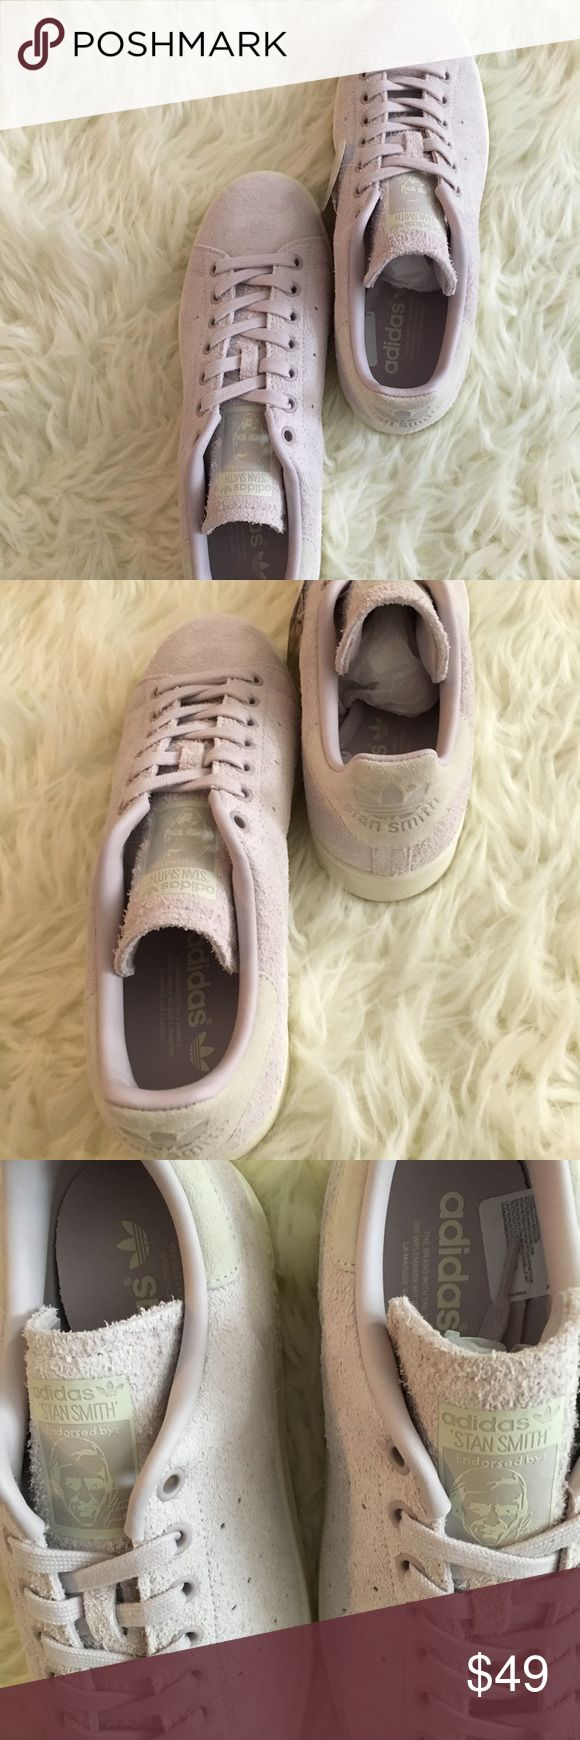 Adidas original Stan smiths in iced purple 👌👌👌 Adidas Stan smith. Size 9.5 women's. Leather and synthetic. Perfect spring shoe🌸🌸🌸🌸so pretty! Brand new in box. adidas Shoes Athletic Shoes